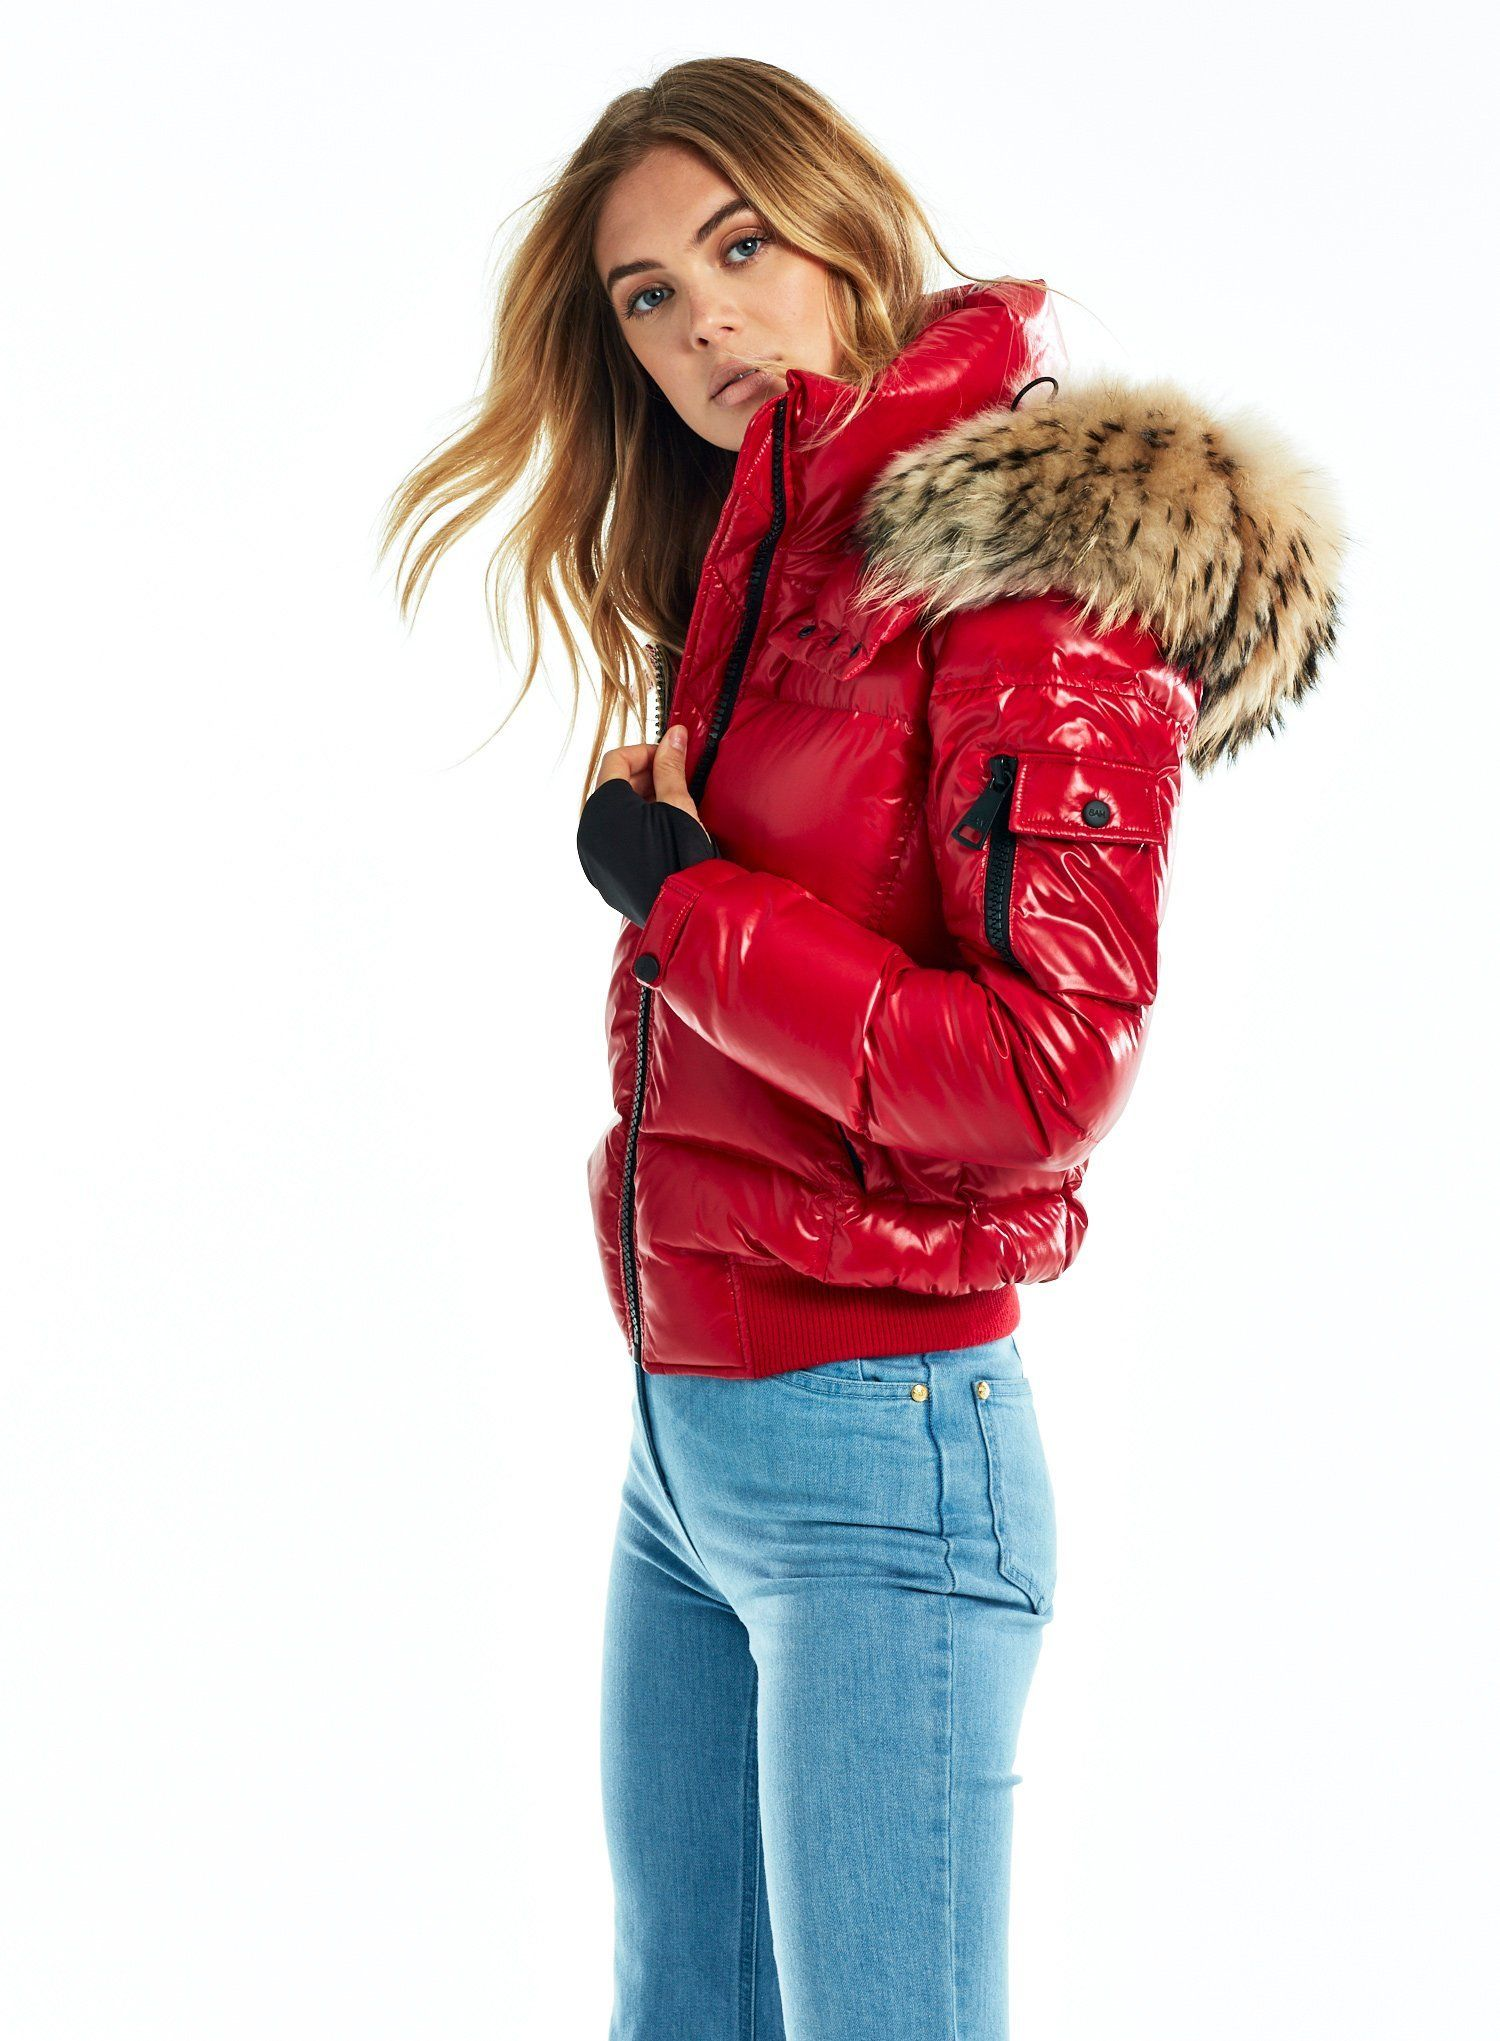 Sam New York Womens Dylan Jacket Jackets For Women Fur Hood Jacket Quilted Bomber Jacket [ 2041 x 1500 Pixel ]